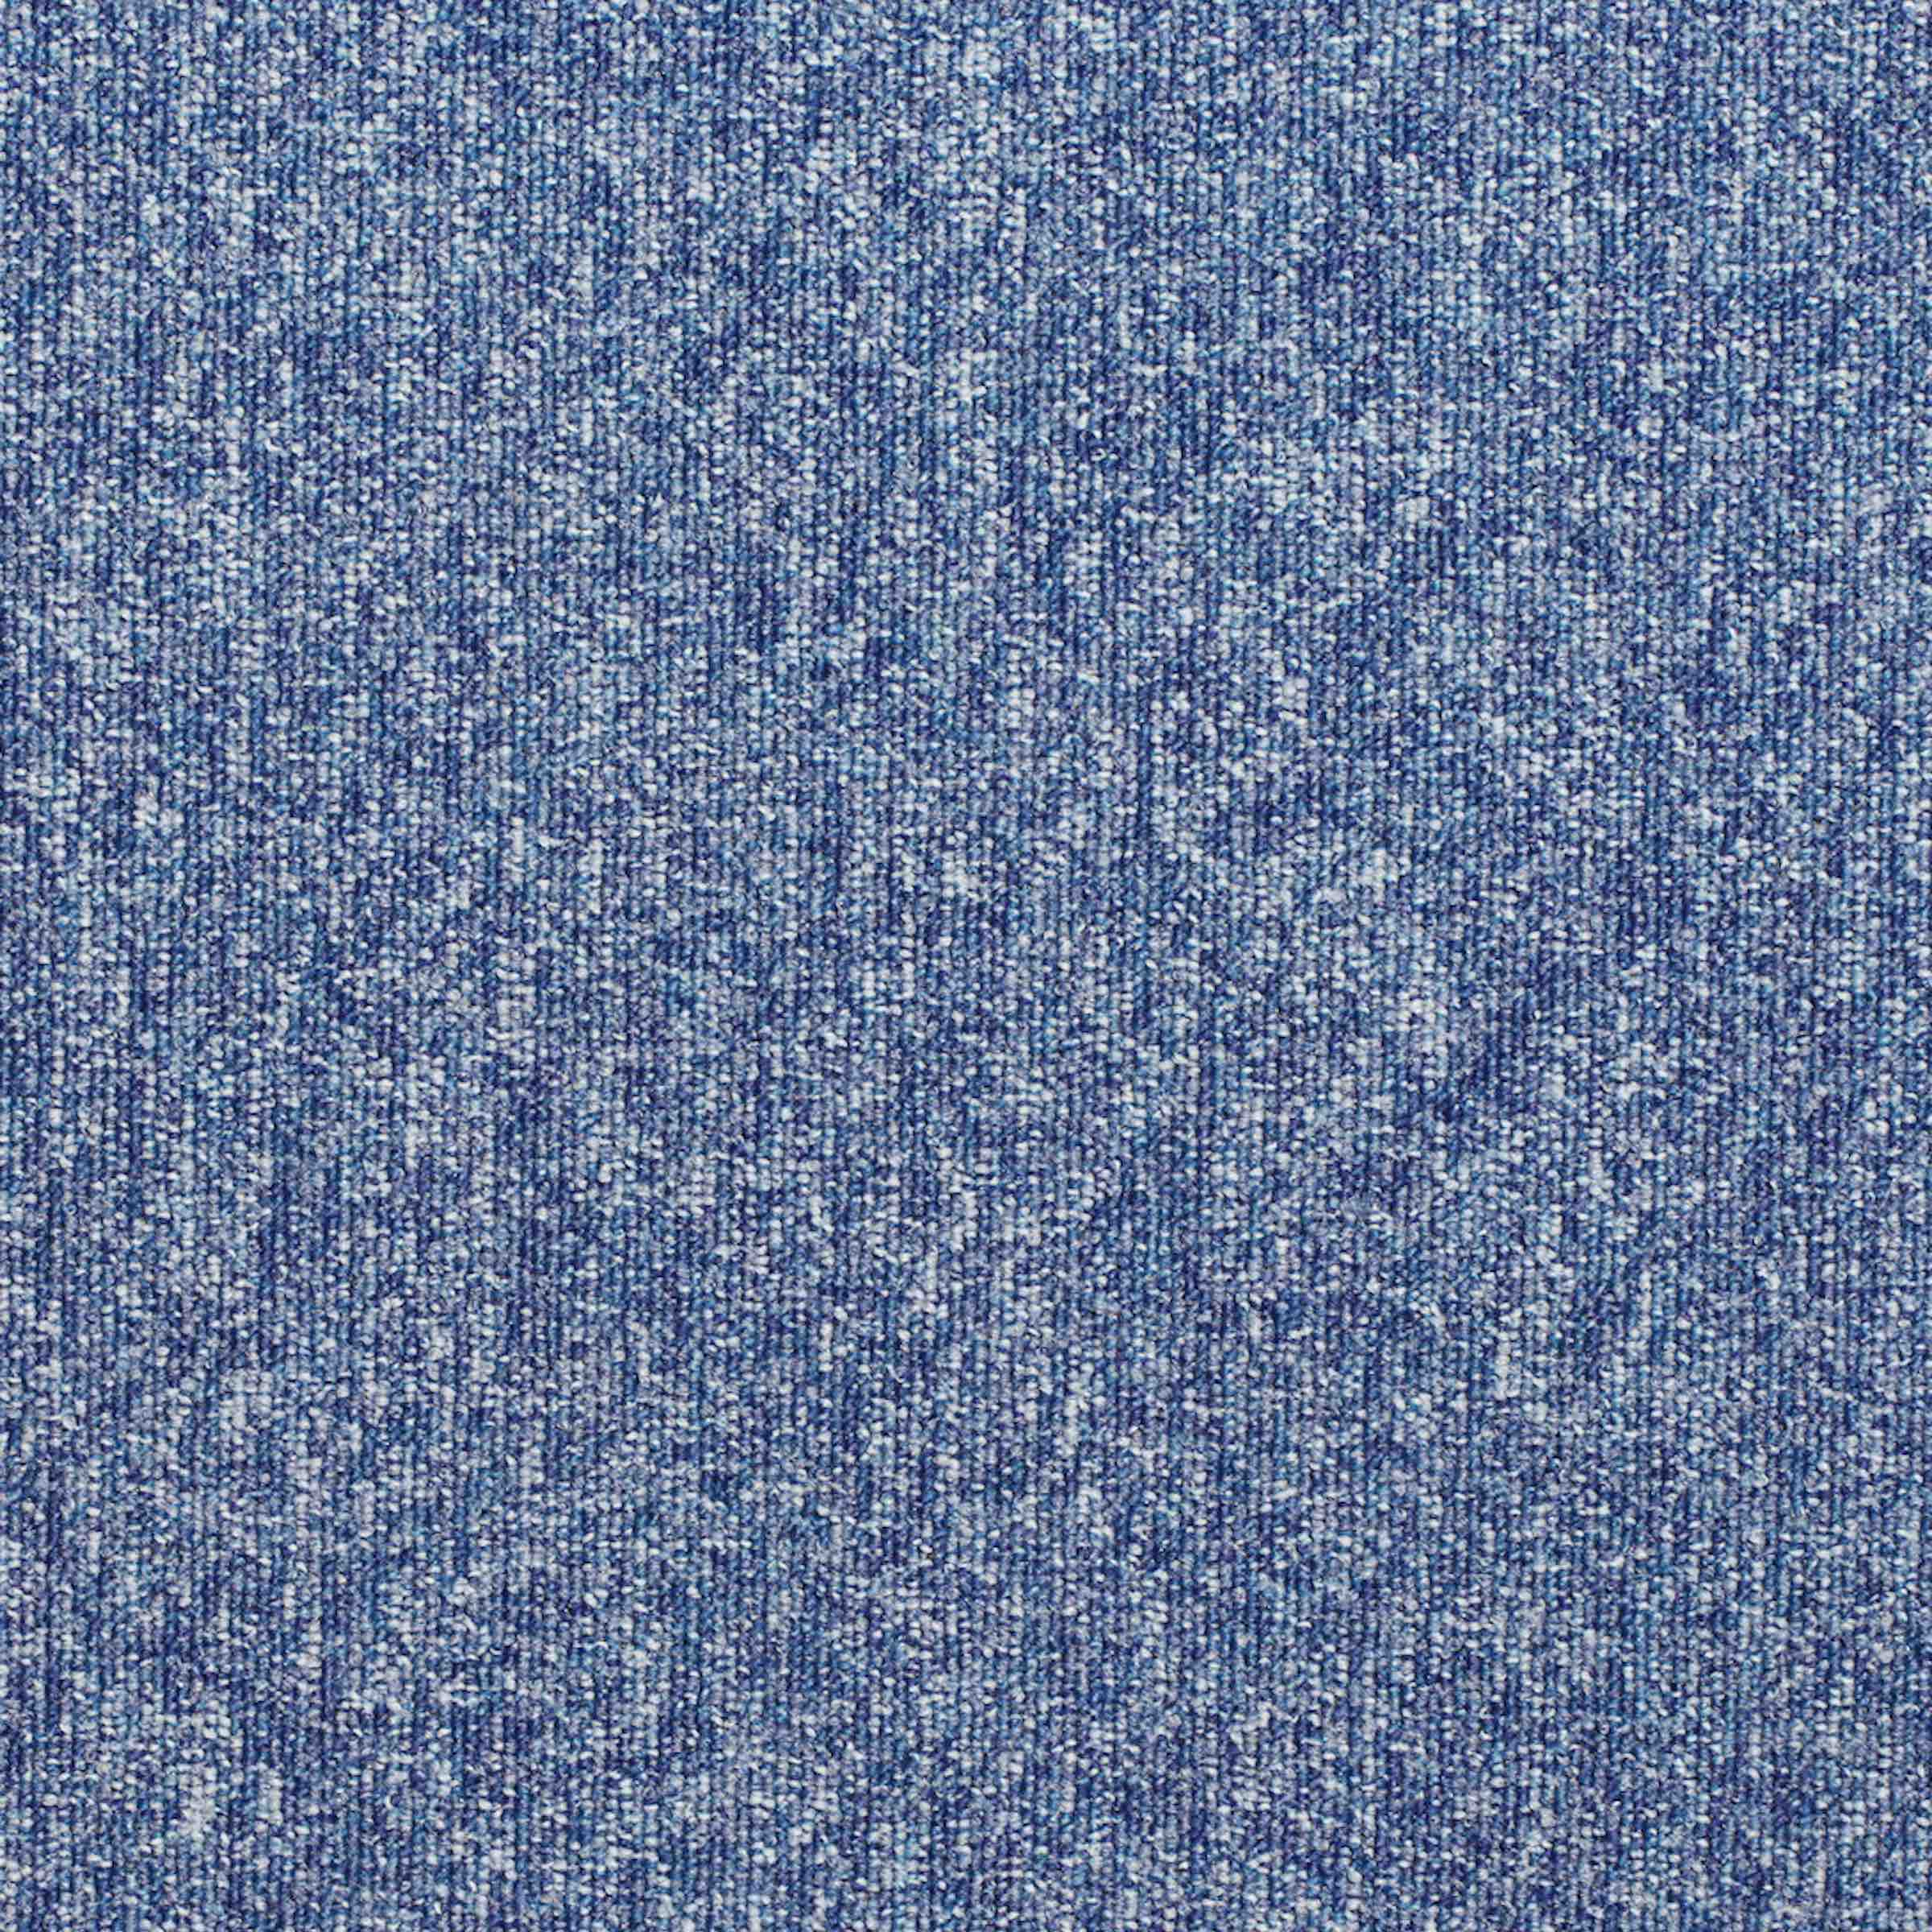 Workspace Loop | Blue Moon | Paragon Carpet Tiles | Commercial Carpet Tiles